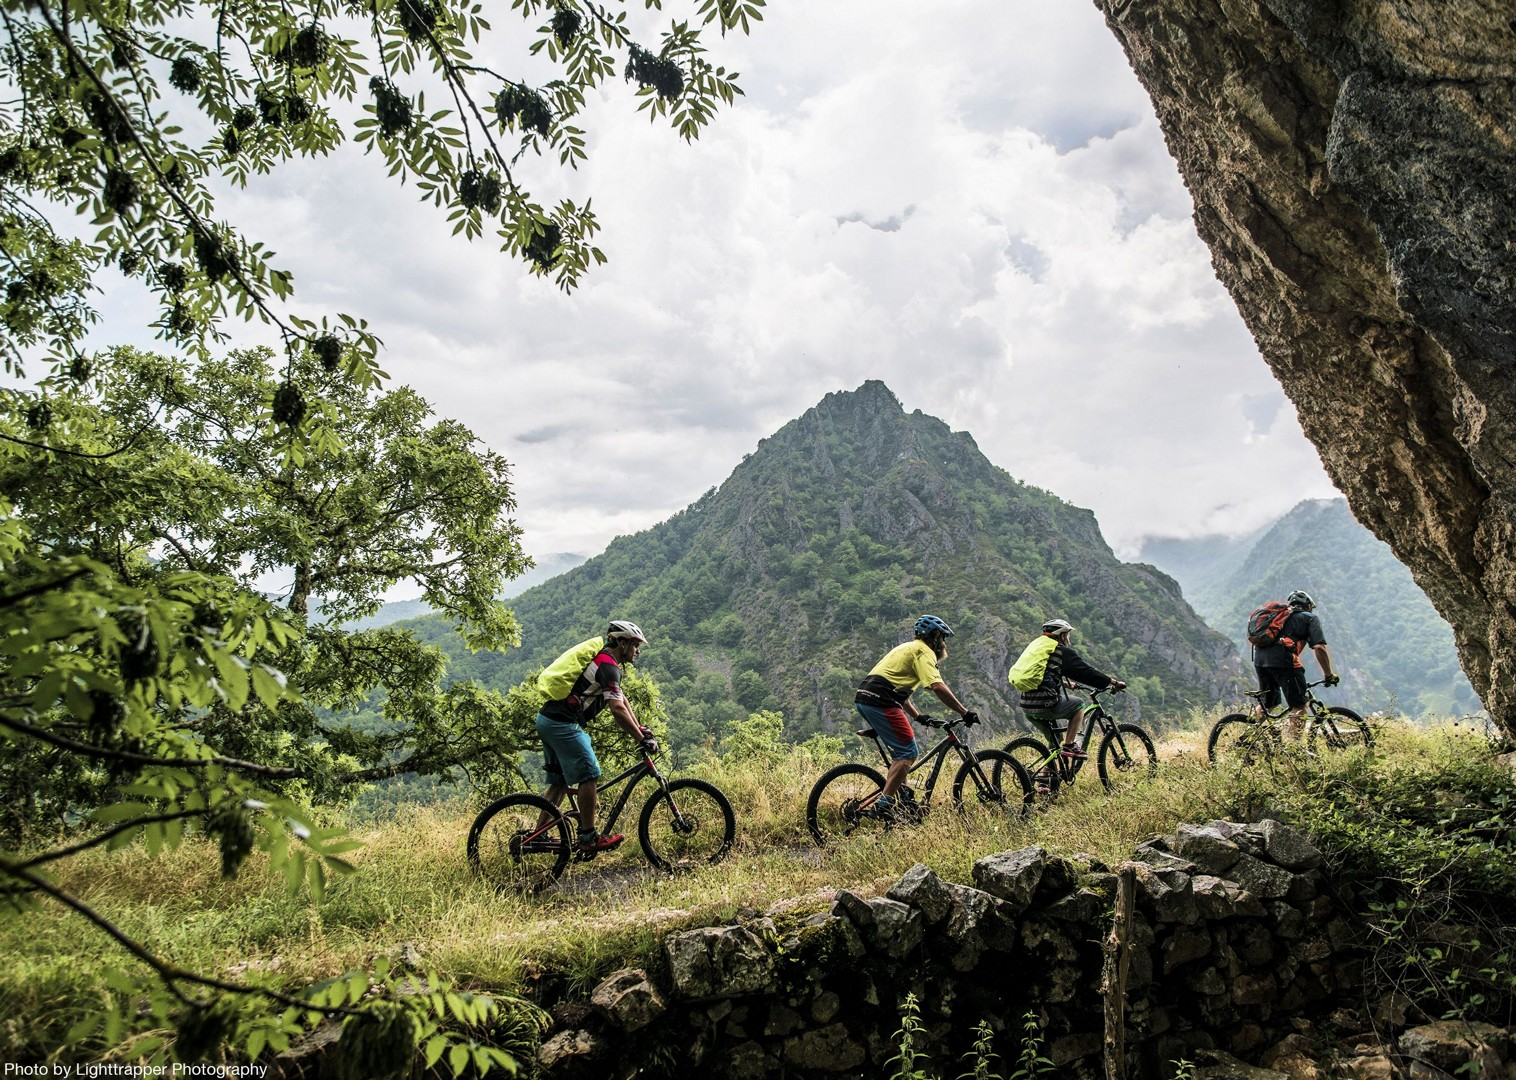 guided-cycling-holiday-northern-spain-picos-de-europa.jpg - Spain - Picos de Europa - Trans Picos - Guided Mountain Bike Holiday - Mountain Biking